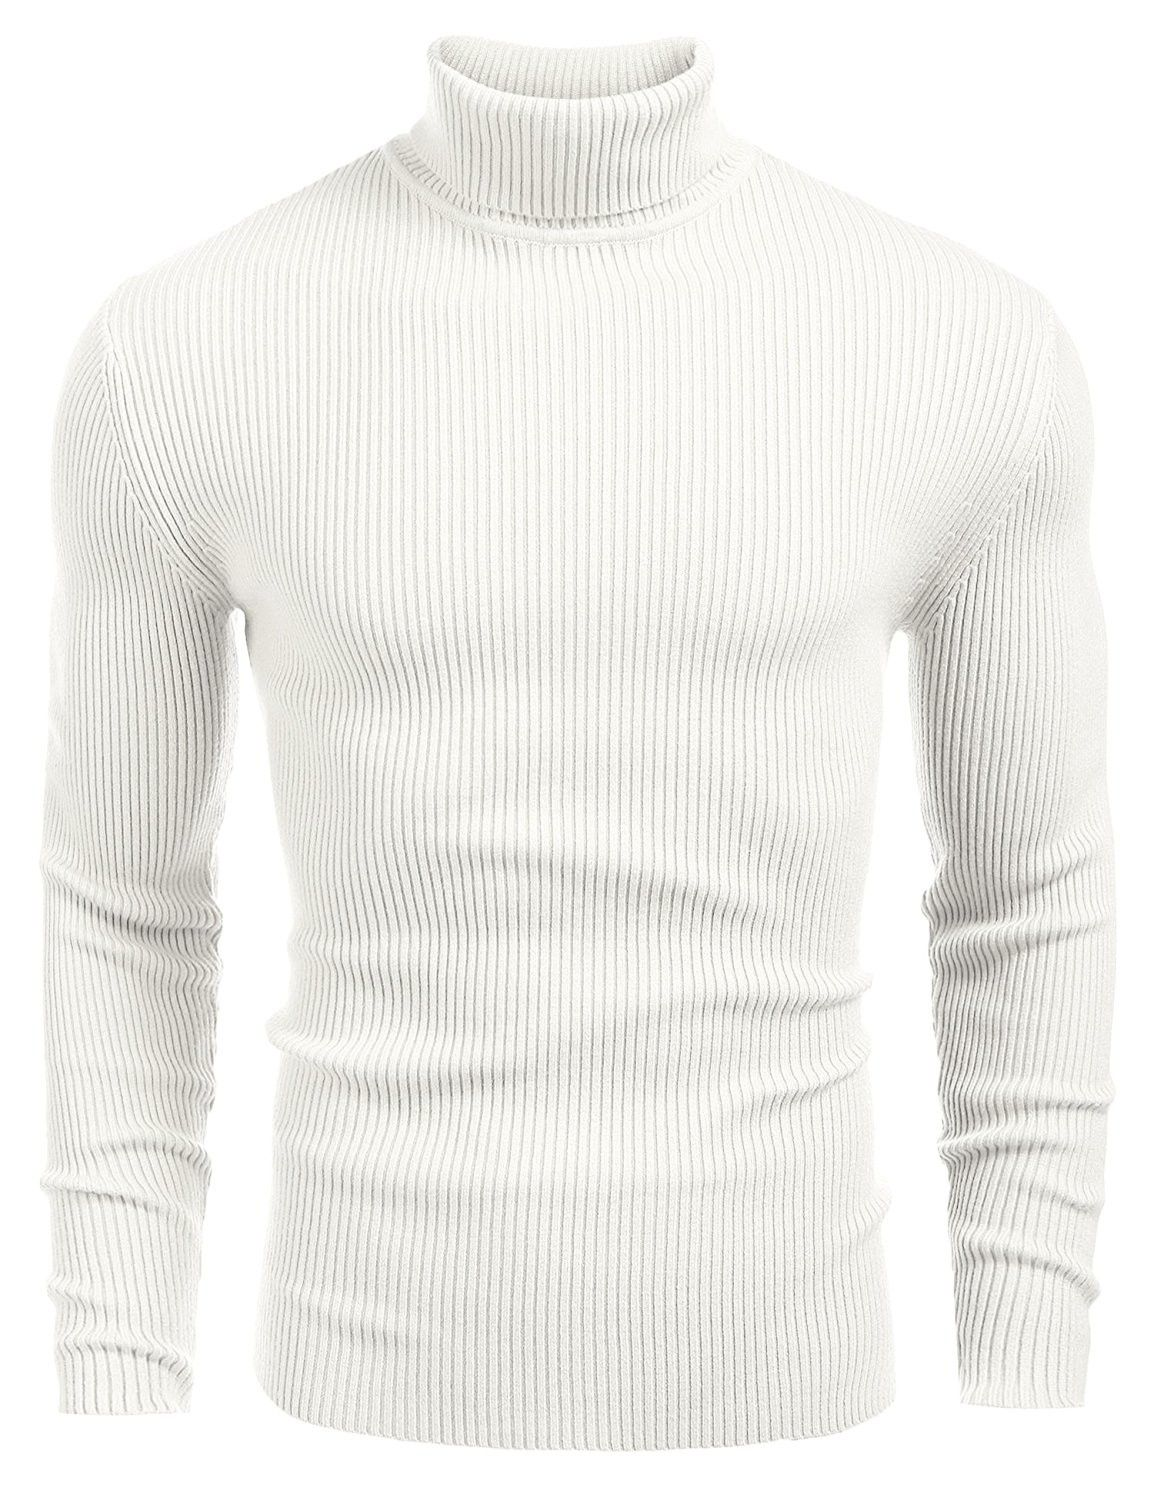 3bd0055d8 Mens Ribbed Slim Fit Knitted Pullover Turtleneck Sweater - White ...